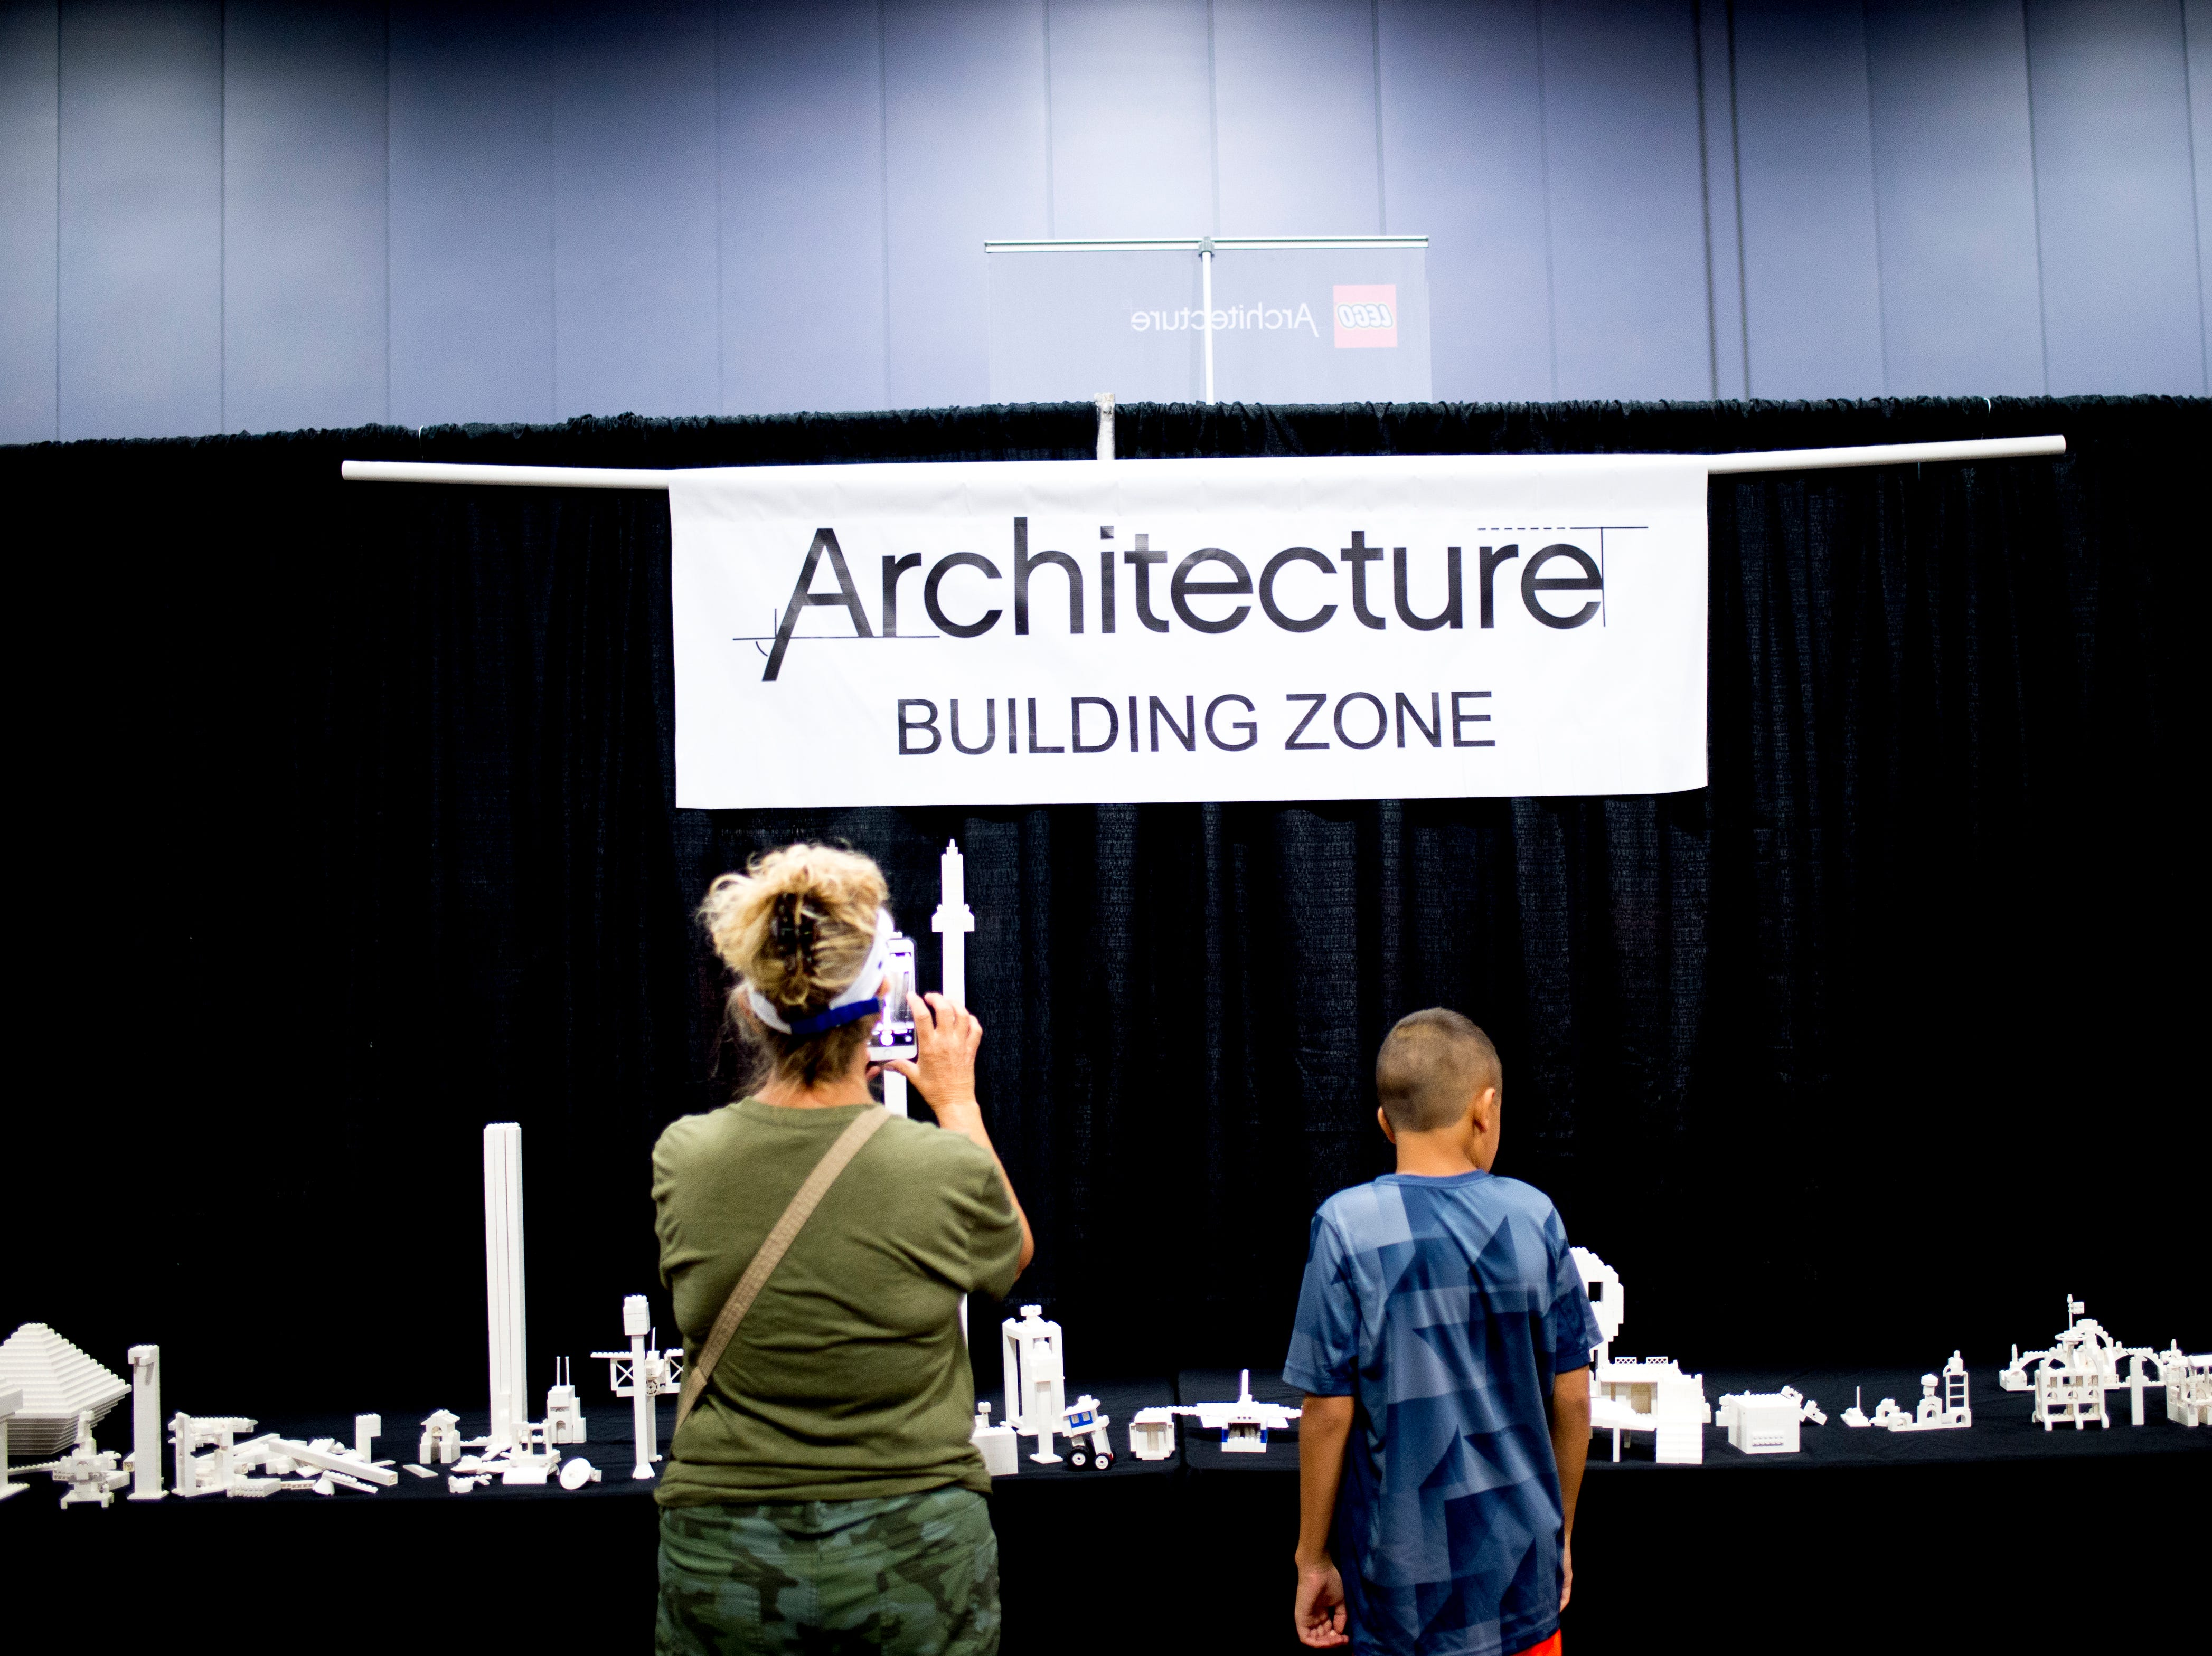 "The ""Architecture Building Zone"" at the BrickUniverse Knoxville LEGO Fan Expo in the Knoxville Convention Center in Knoxville, Tennessee on Saturday, August 25, 2018. Life-sized LEGO displays, over 40 world landmarks build to-scale from LEGO as well as castles, trains, and cities and other creations were on display."